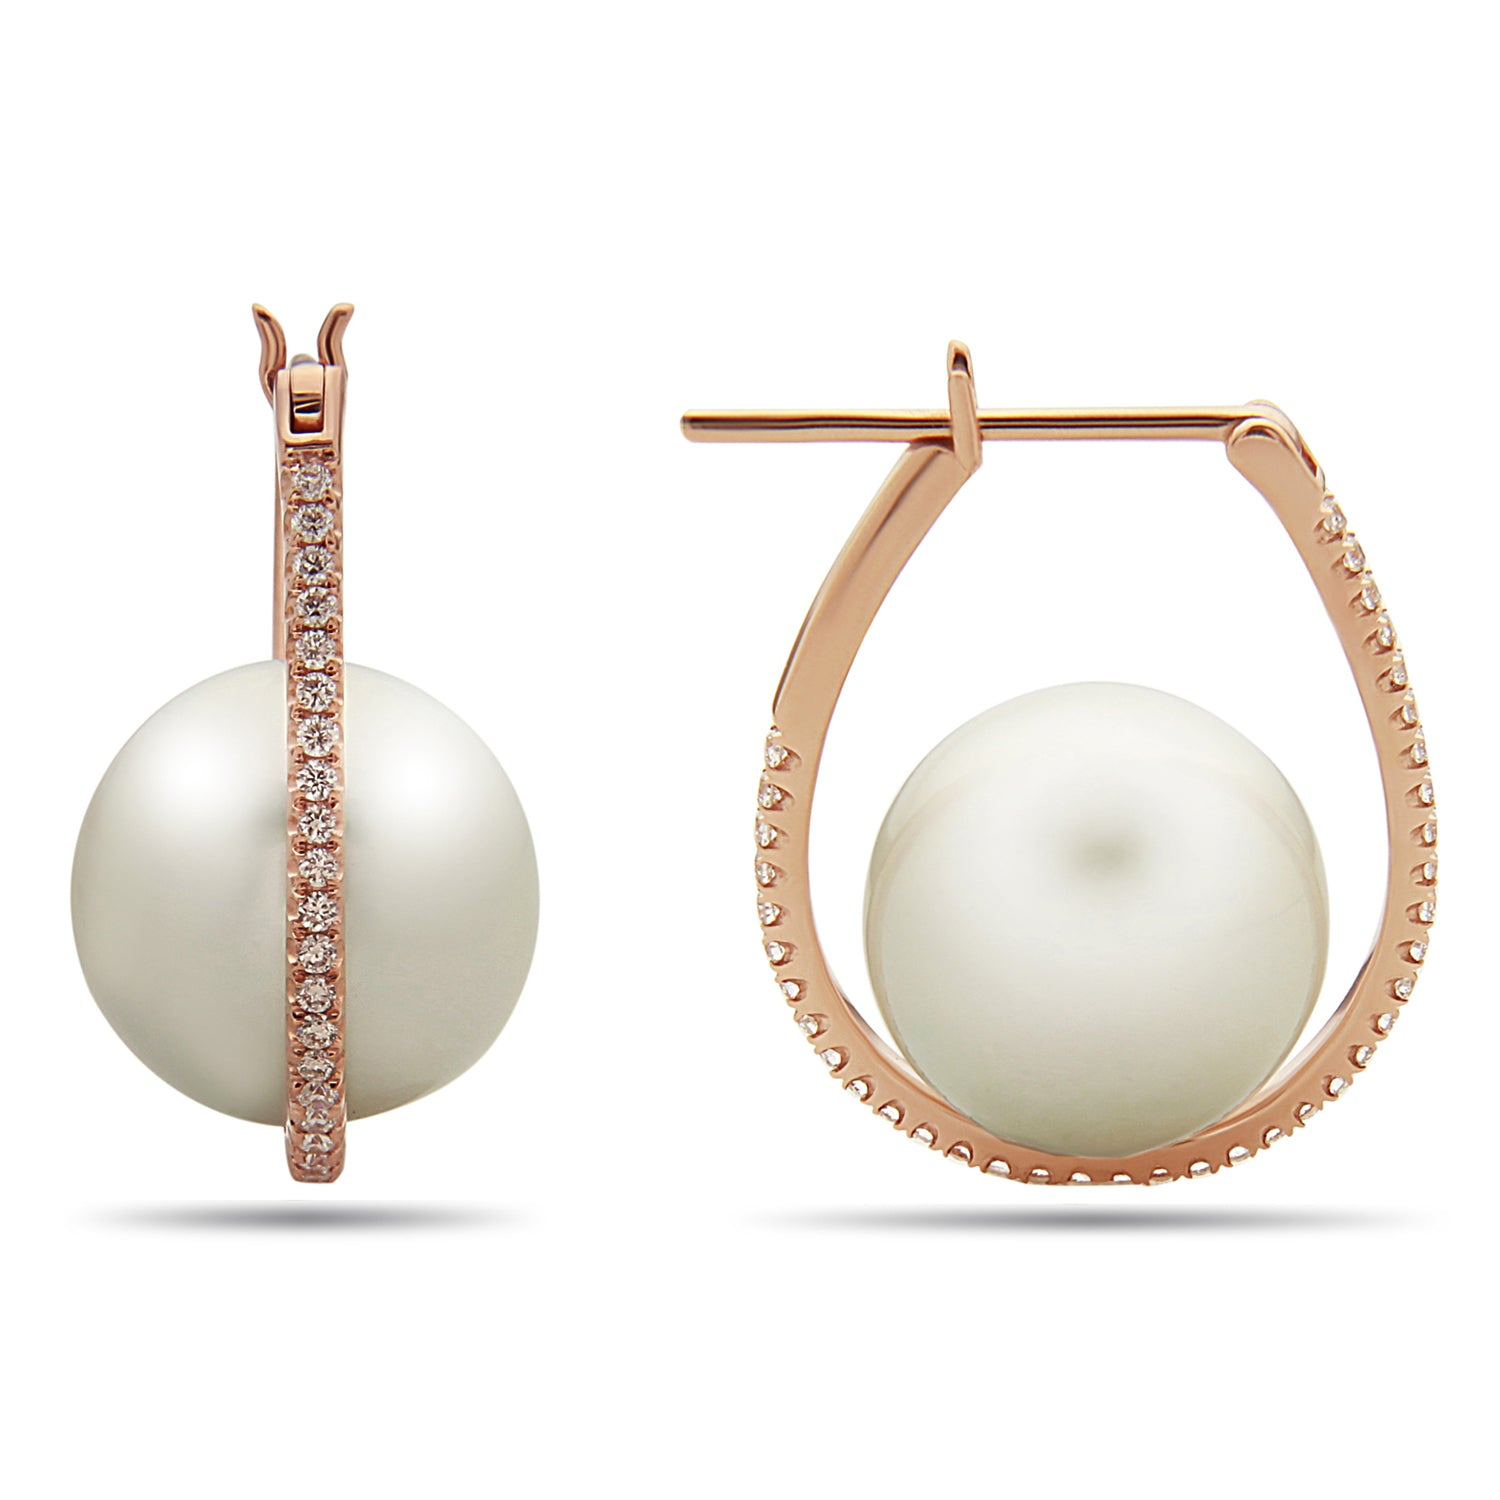 Galaxy Collection 12-13mm White South Sea Pearl and Diamond Earrings